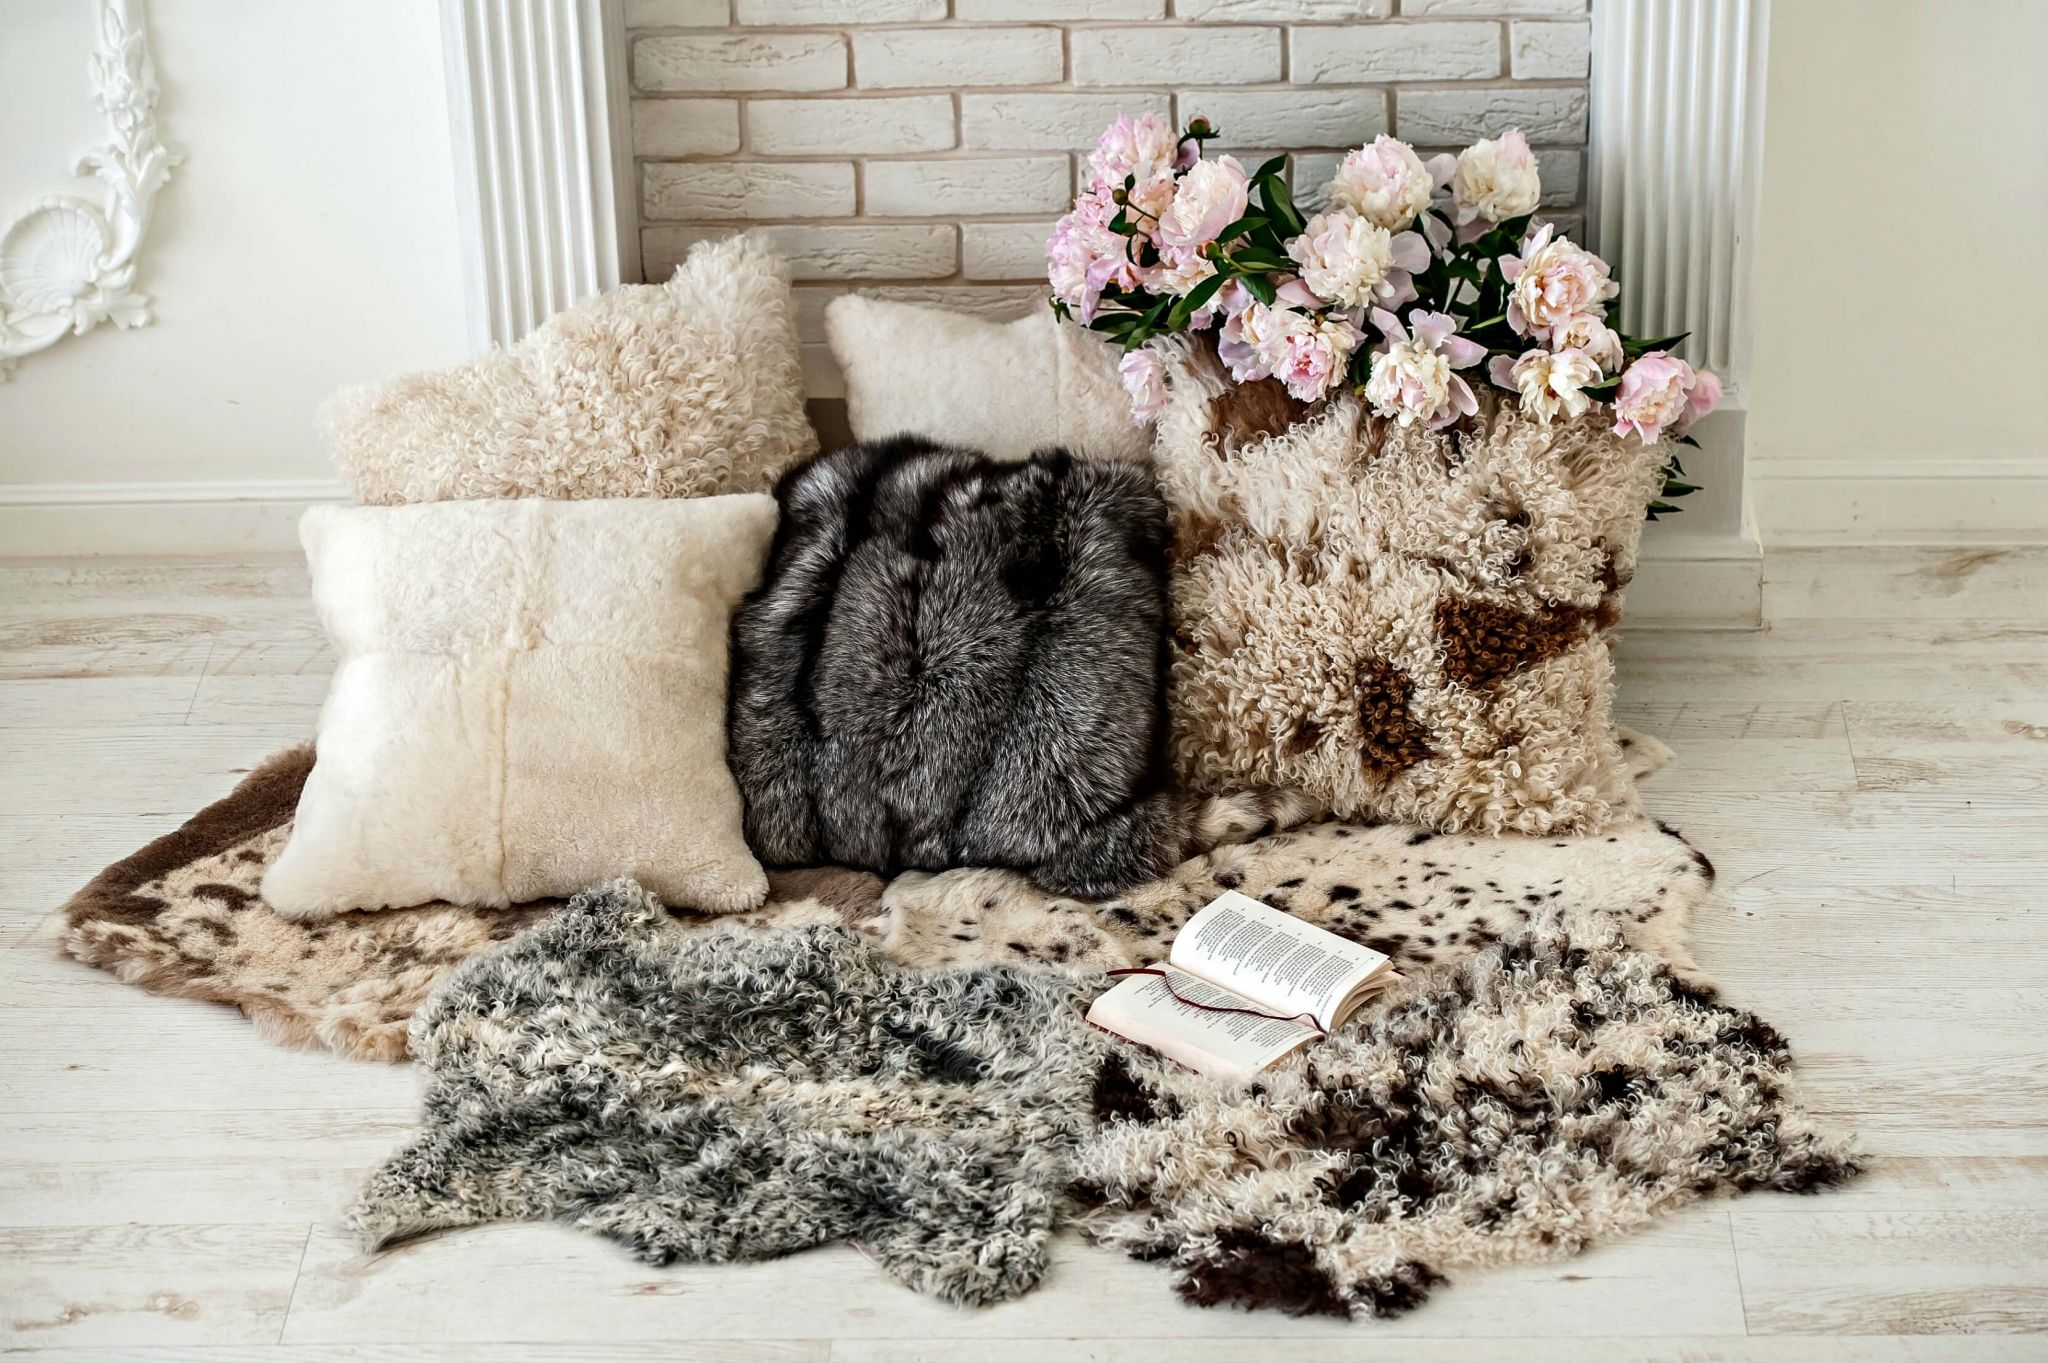 make your house a home - pile of faux fur cushions and rugs